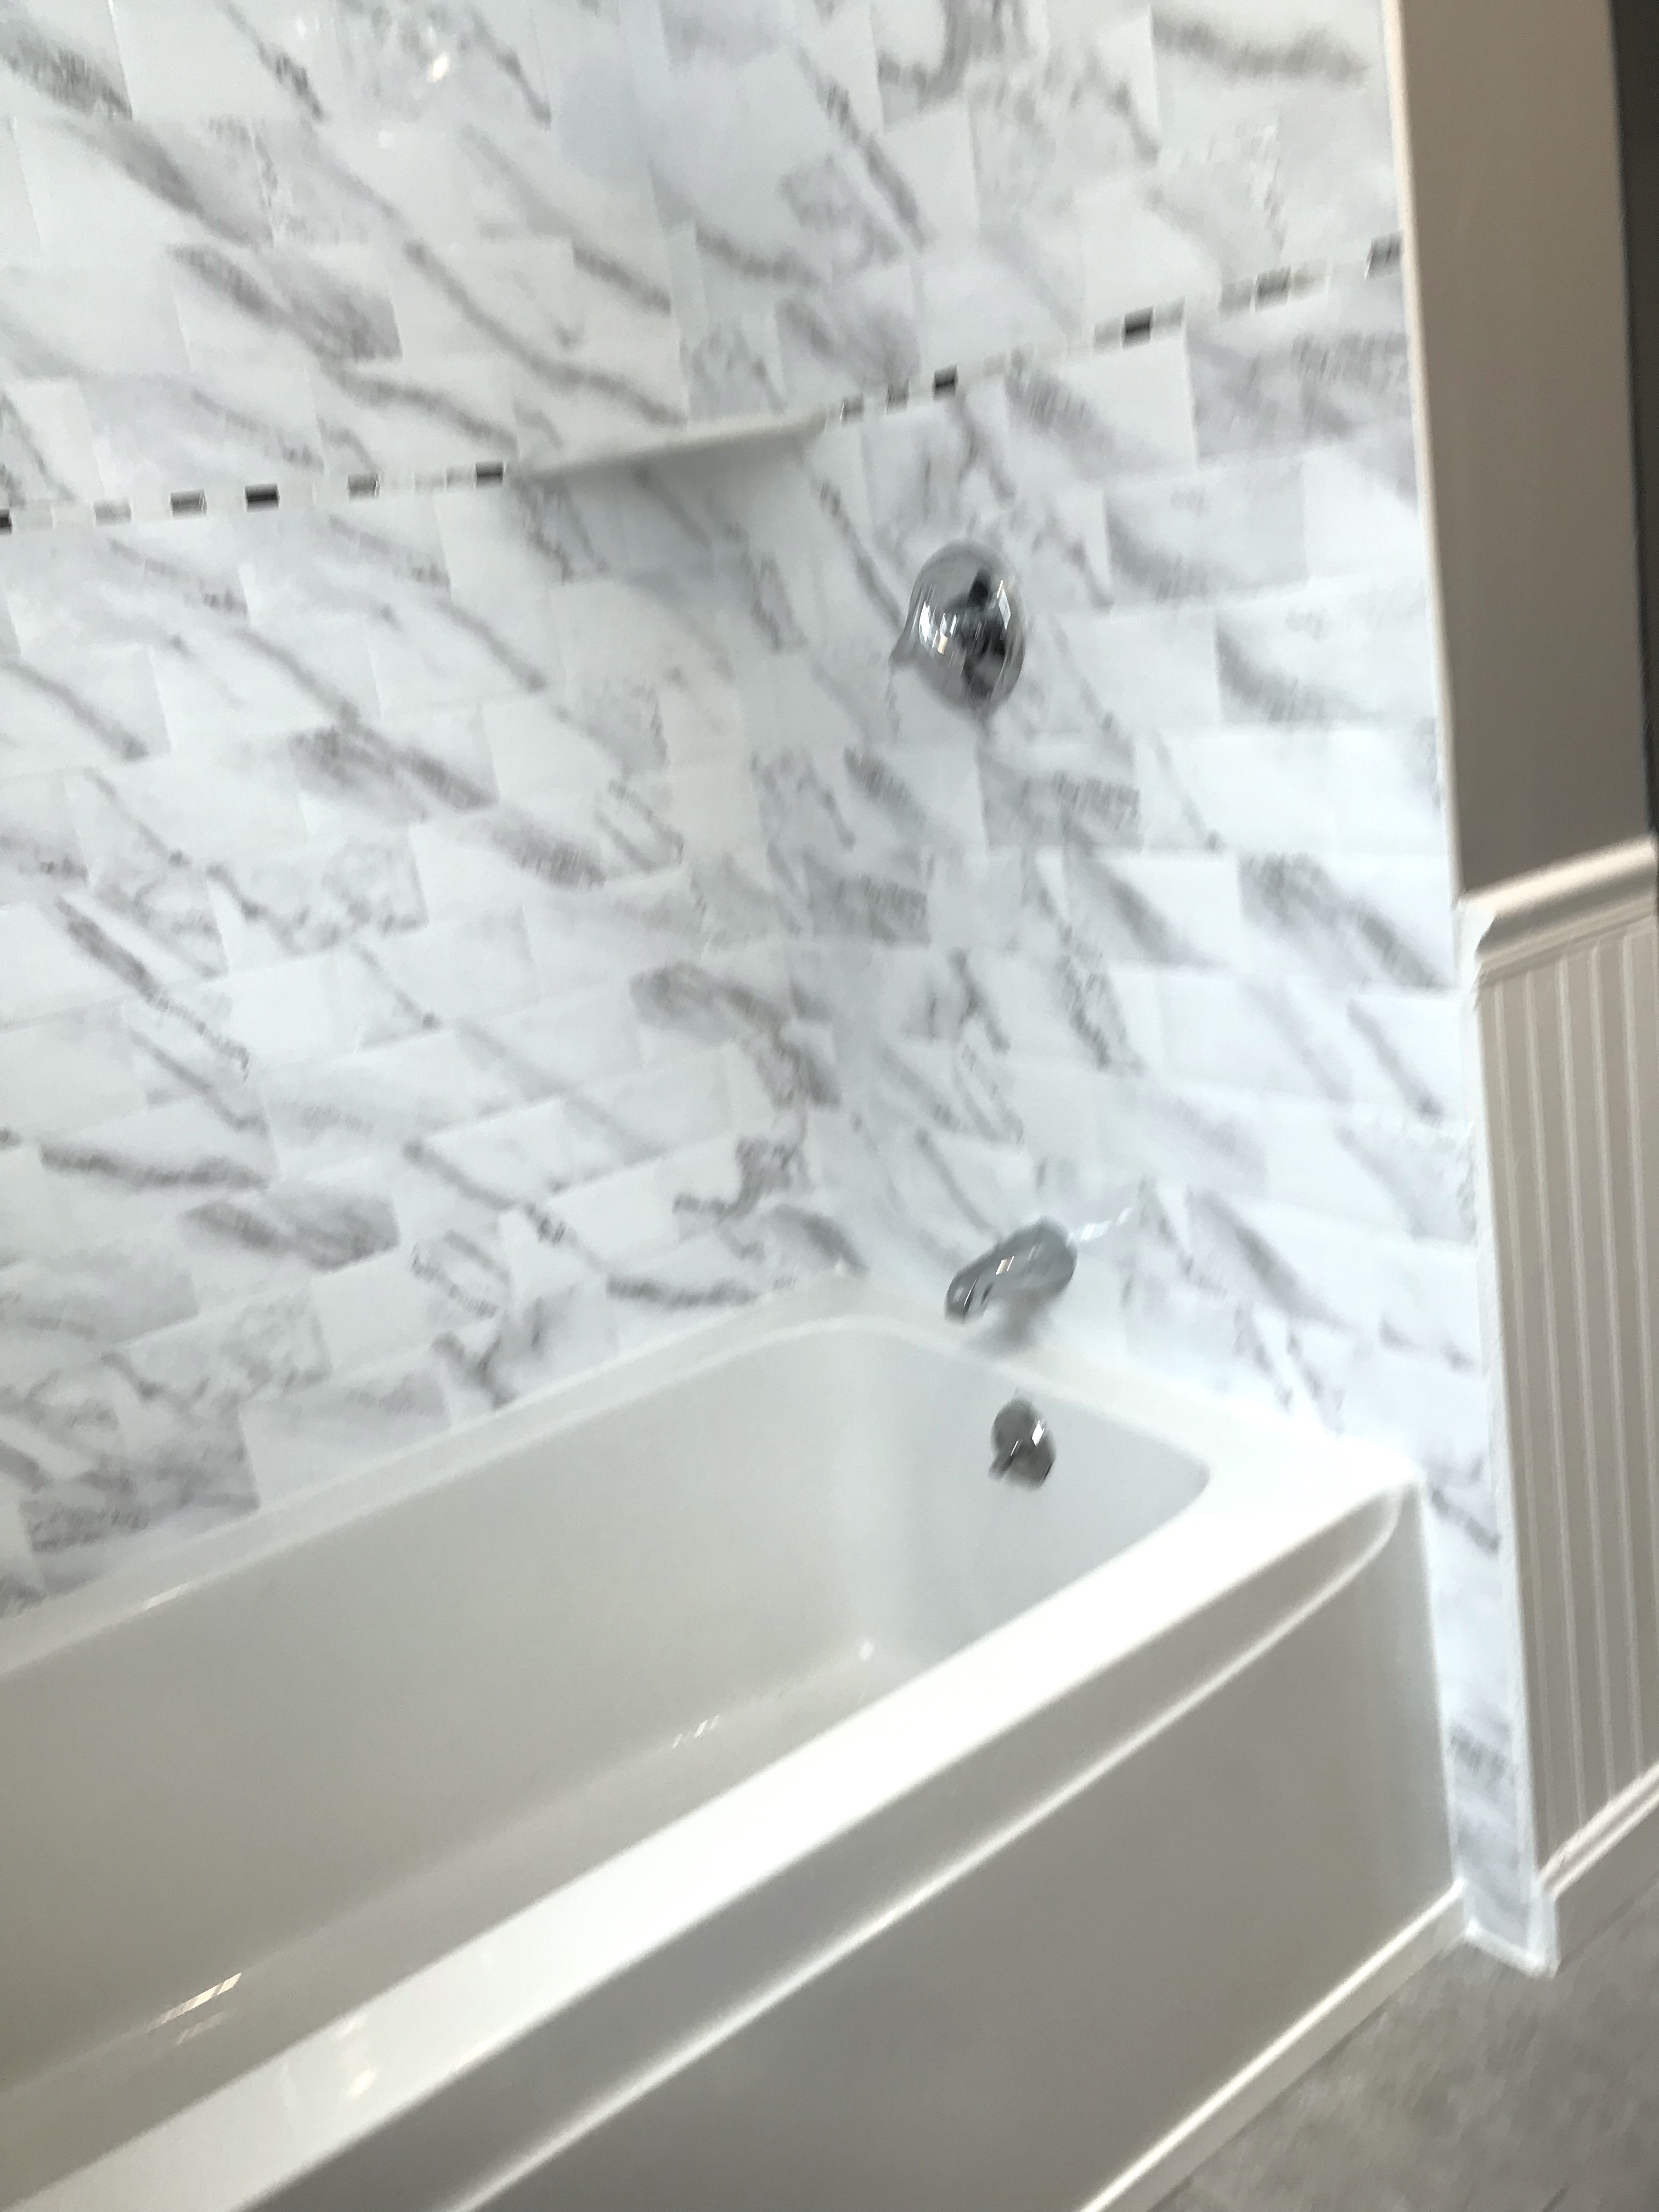 Services | Bathrooms by Design - Bathroom Renovation, Remodeling in ...